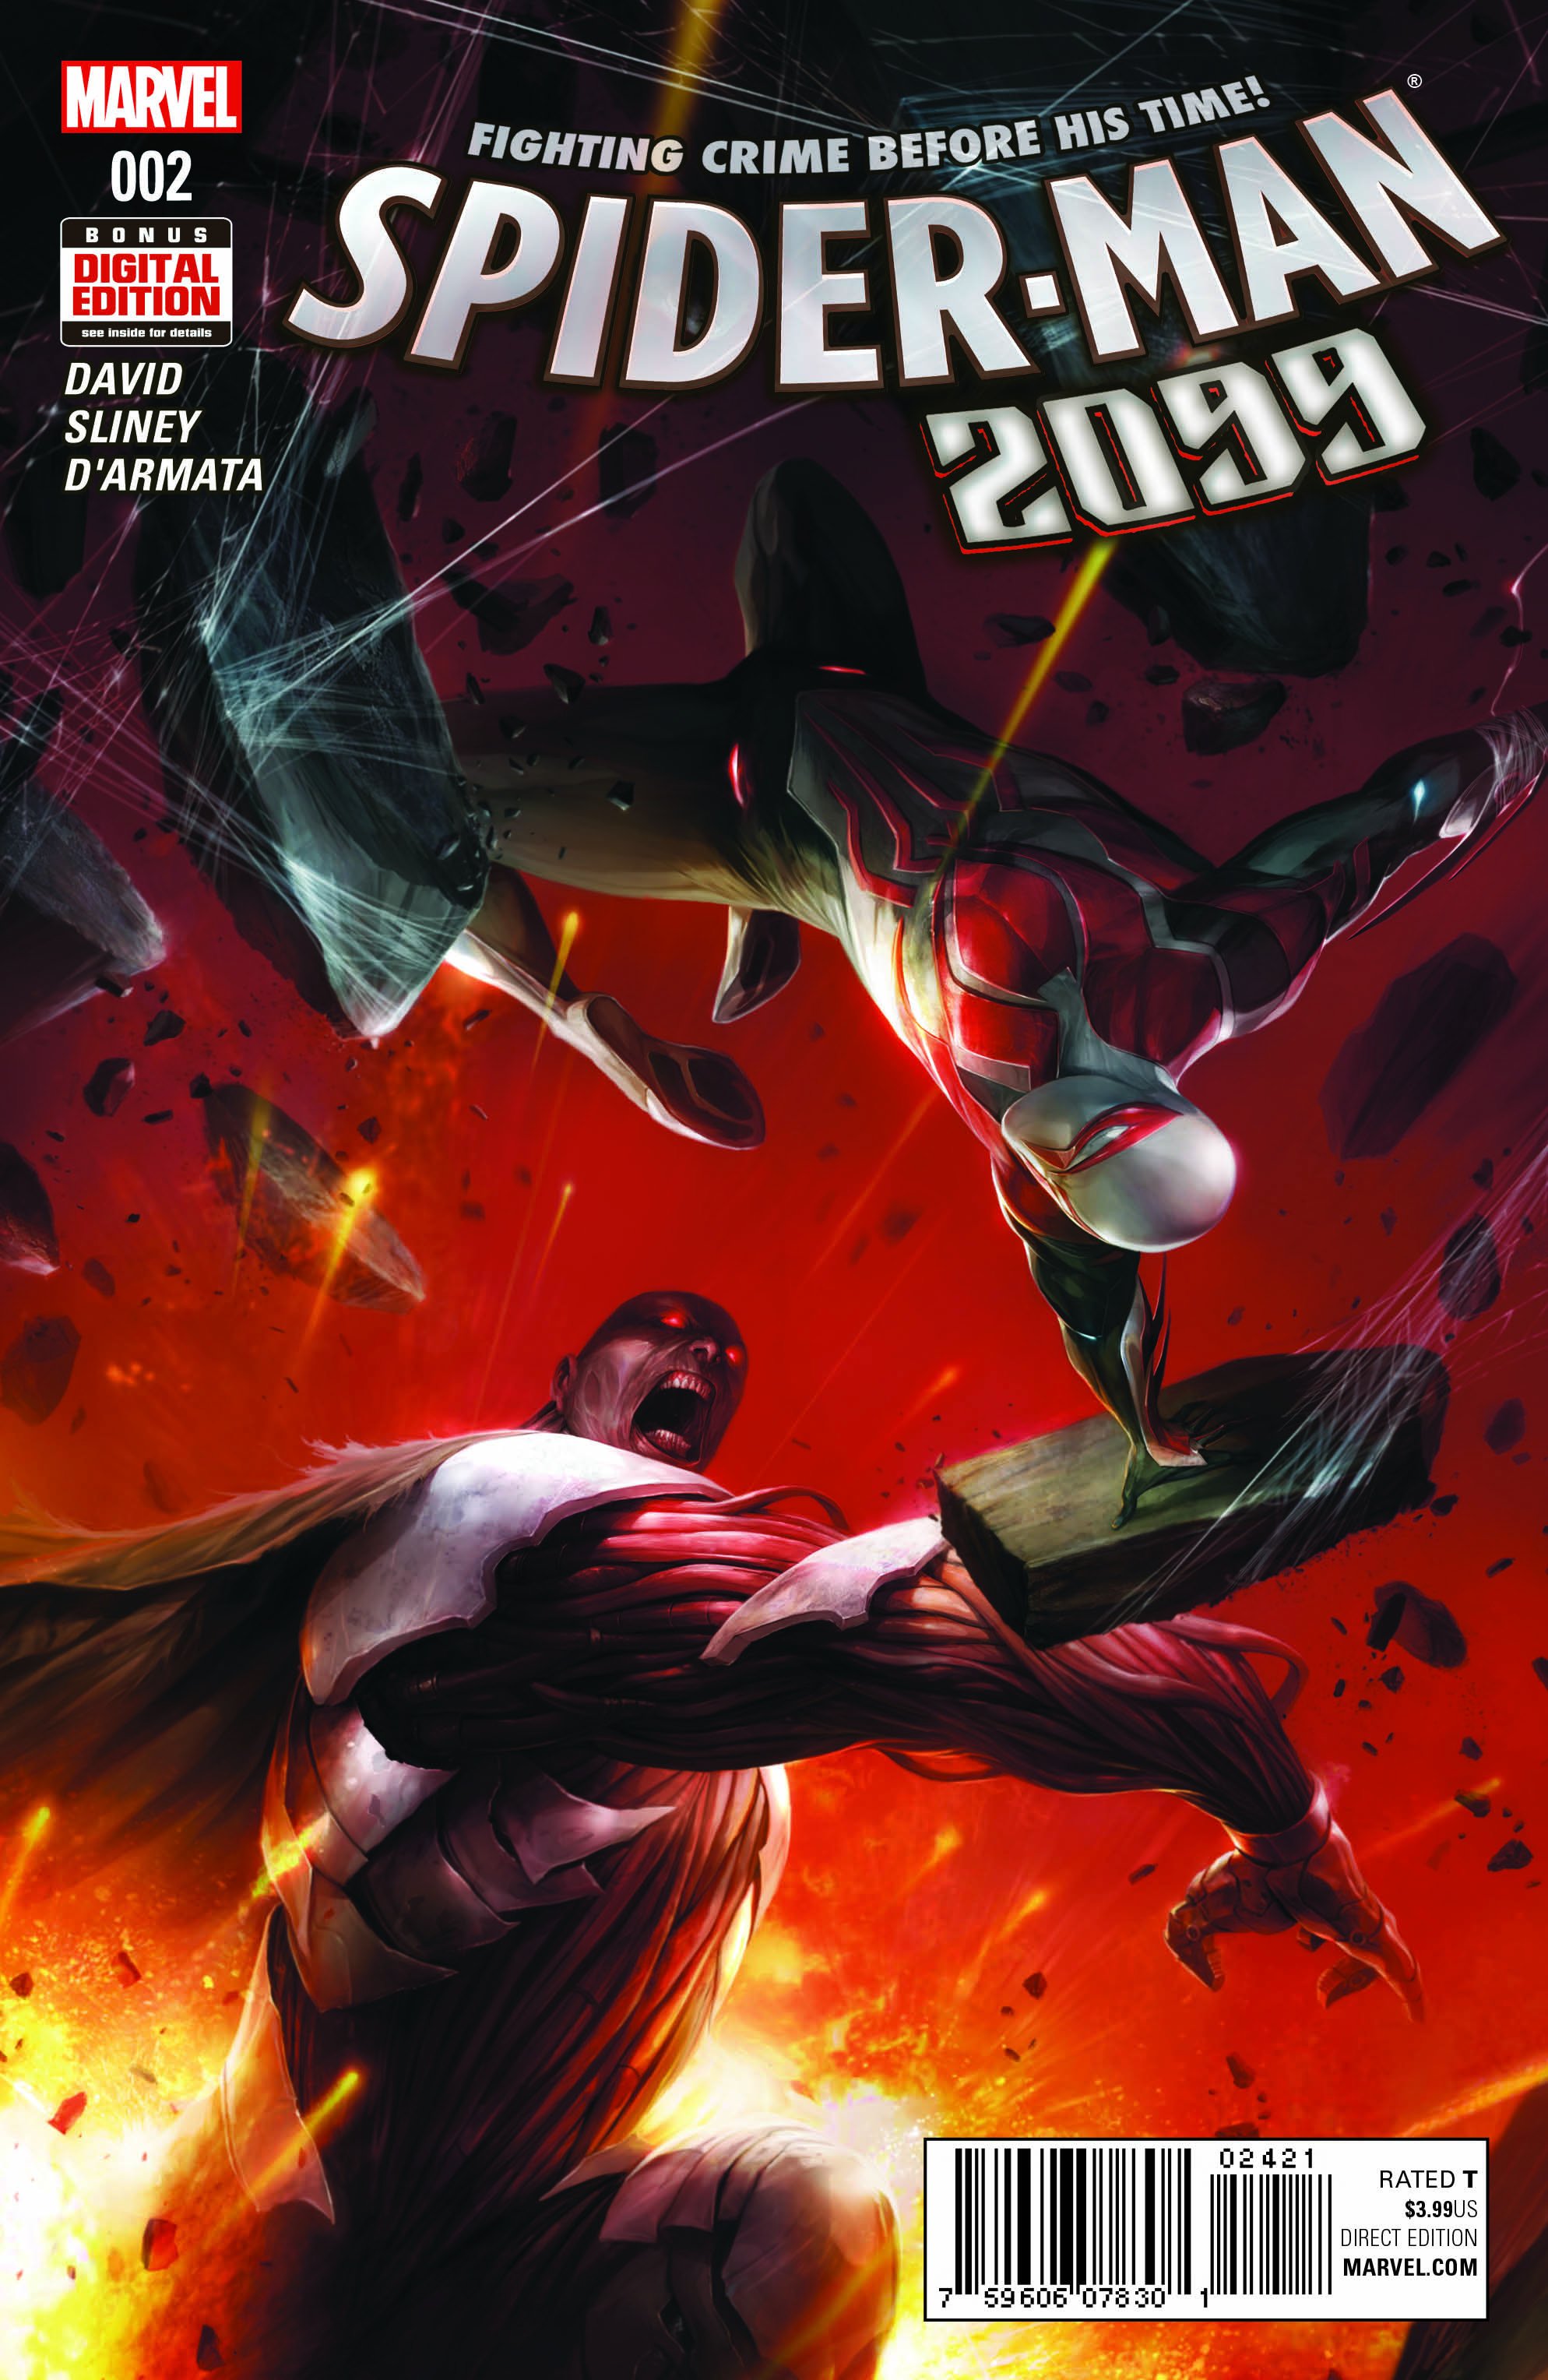 Pullbox Previews: Spider-Man 2099 #2 - The PullBox